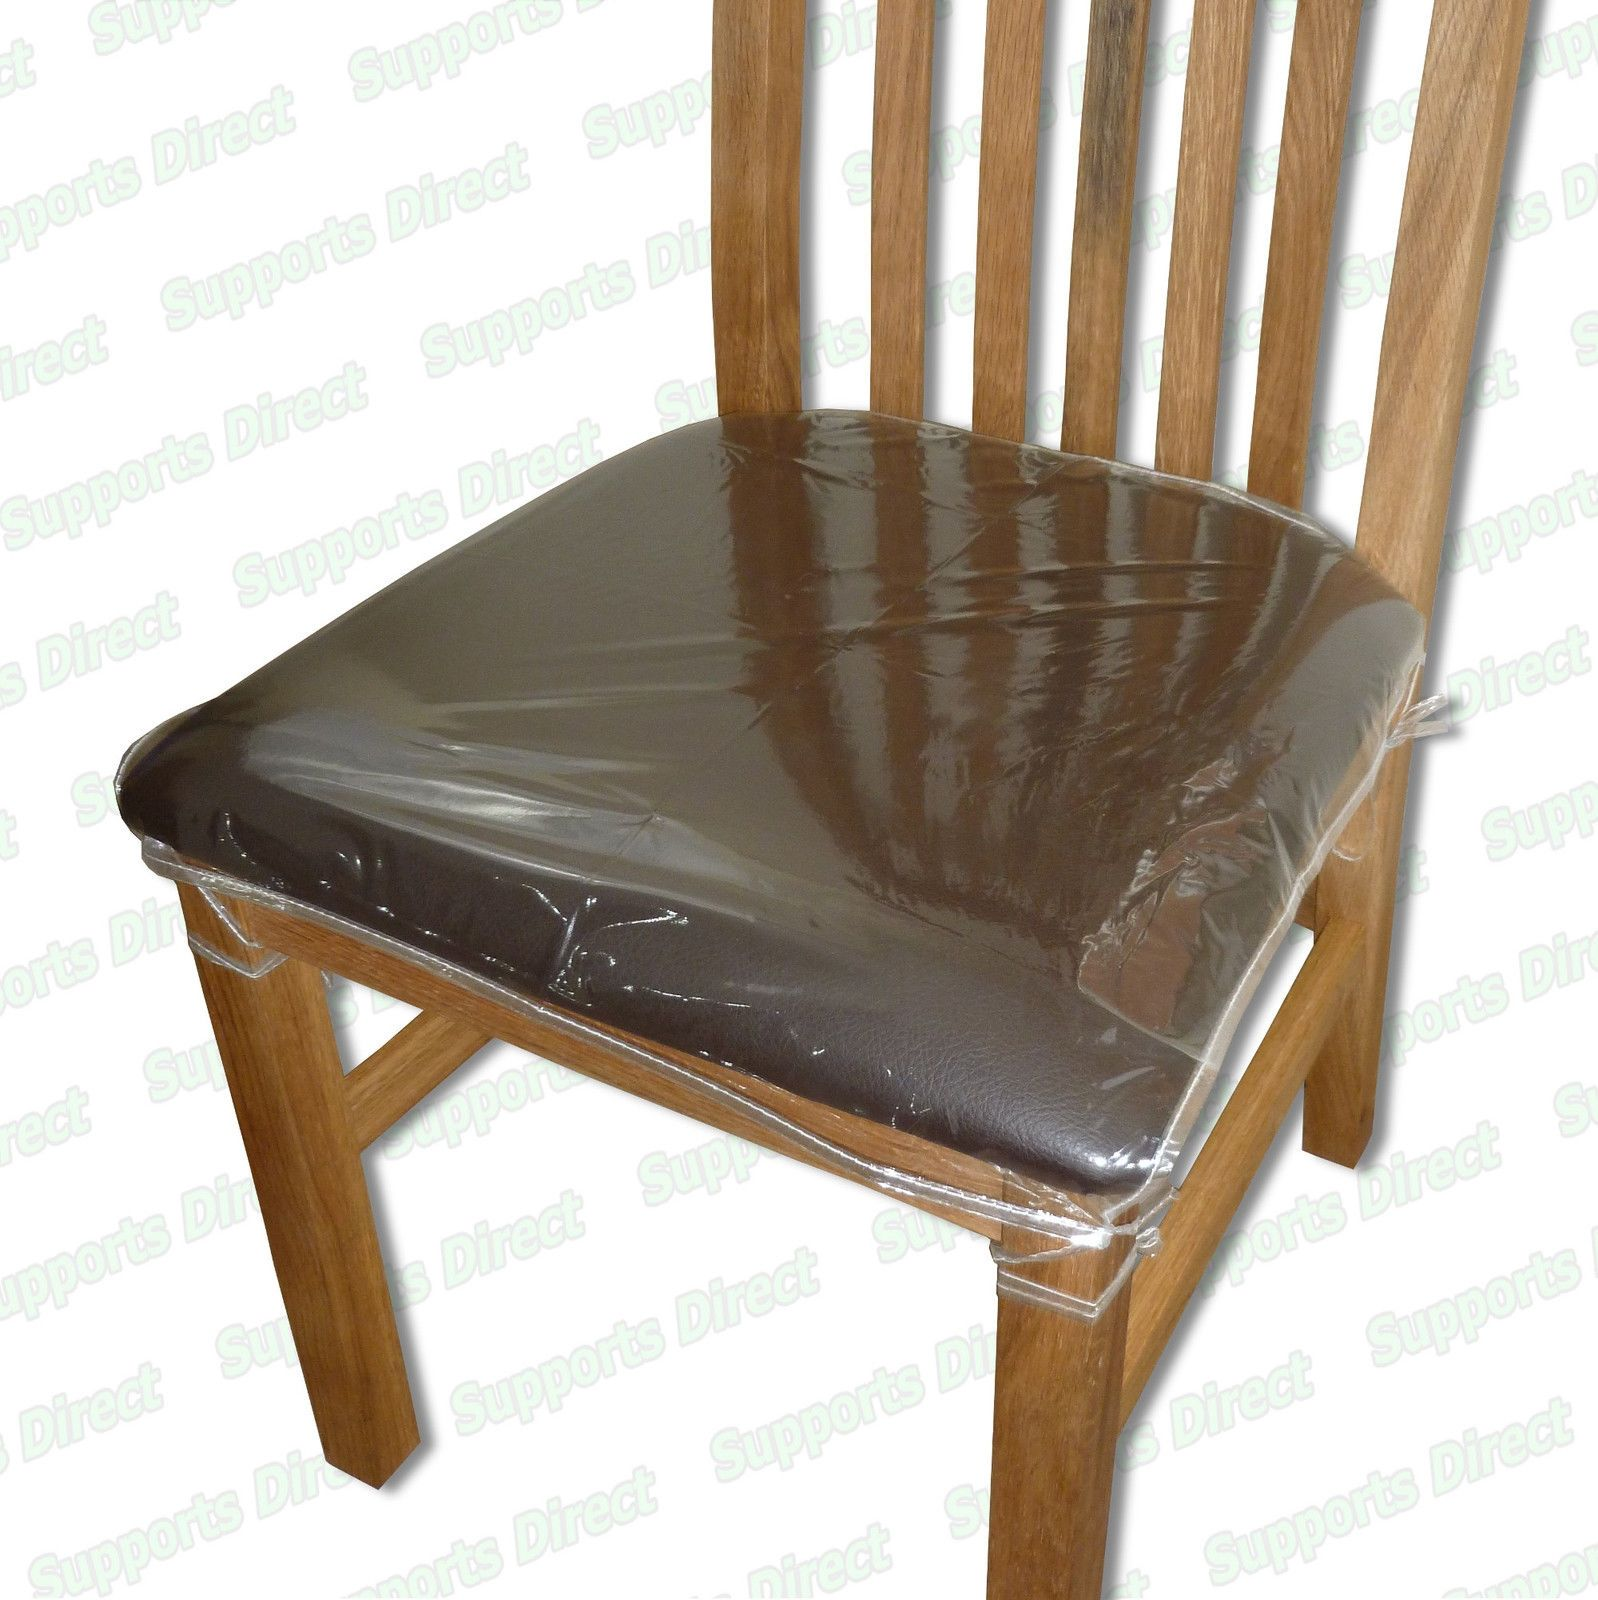 plastic chair seat covers. Plastic Seat Covers For Dining Room Chairs - Decor IdeasDecor Ideas Chair L